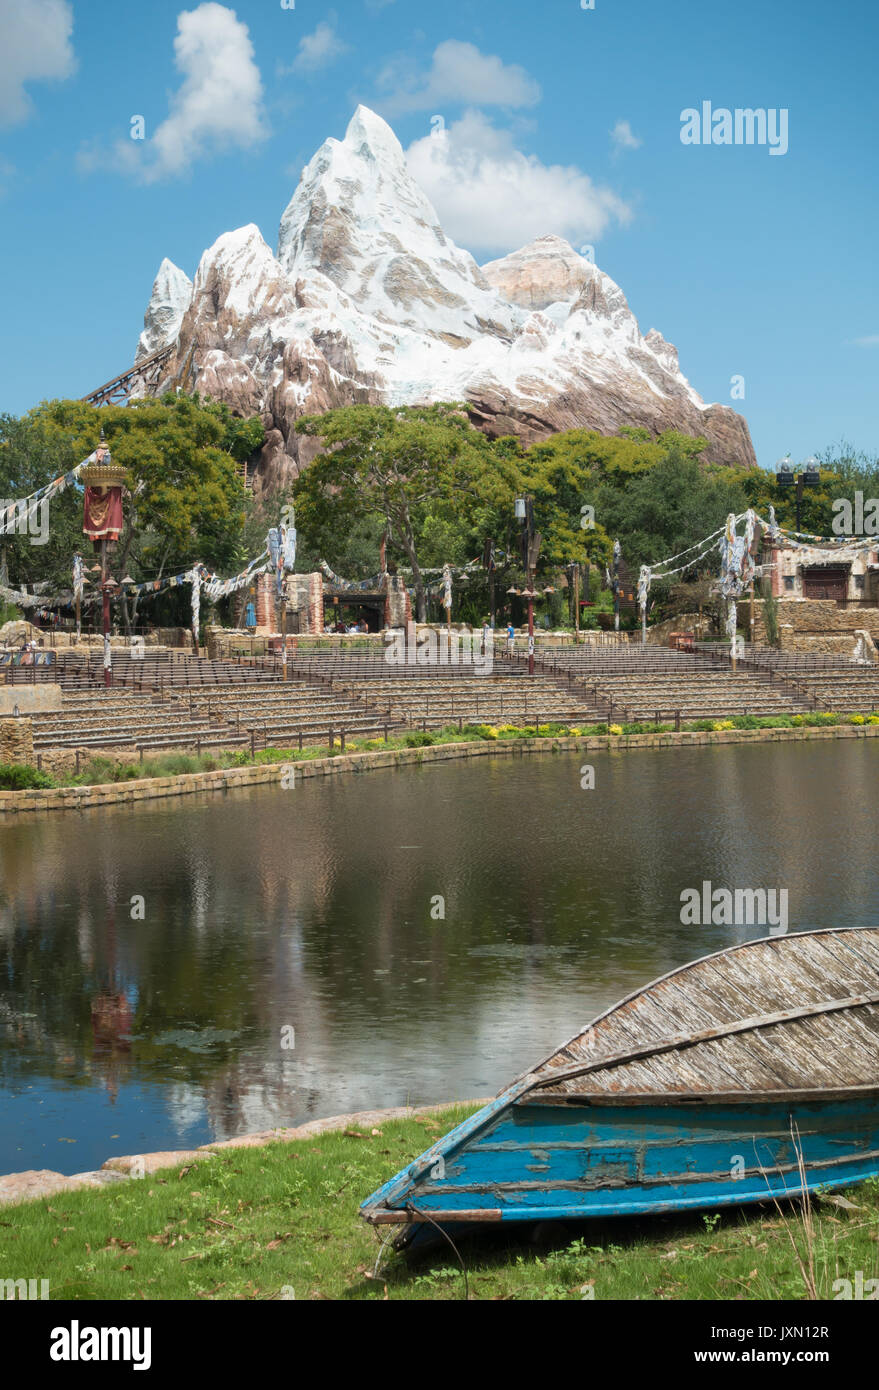 Looking towards Expedition Everest over the Rivers of Light lake in Disneys Animal Kingdom Theme Park, Orlando, Florida. - Stock Image